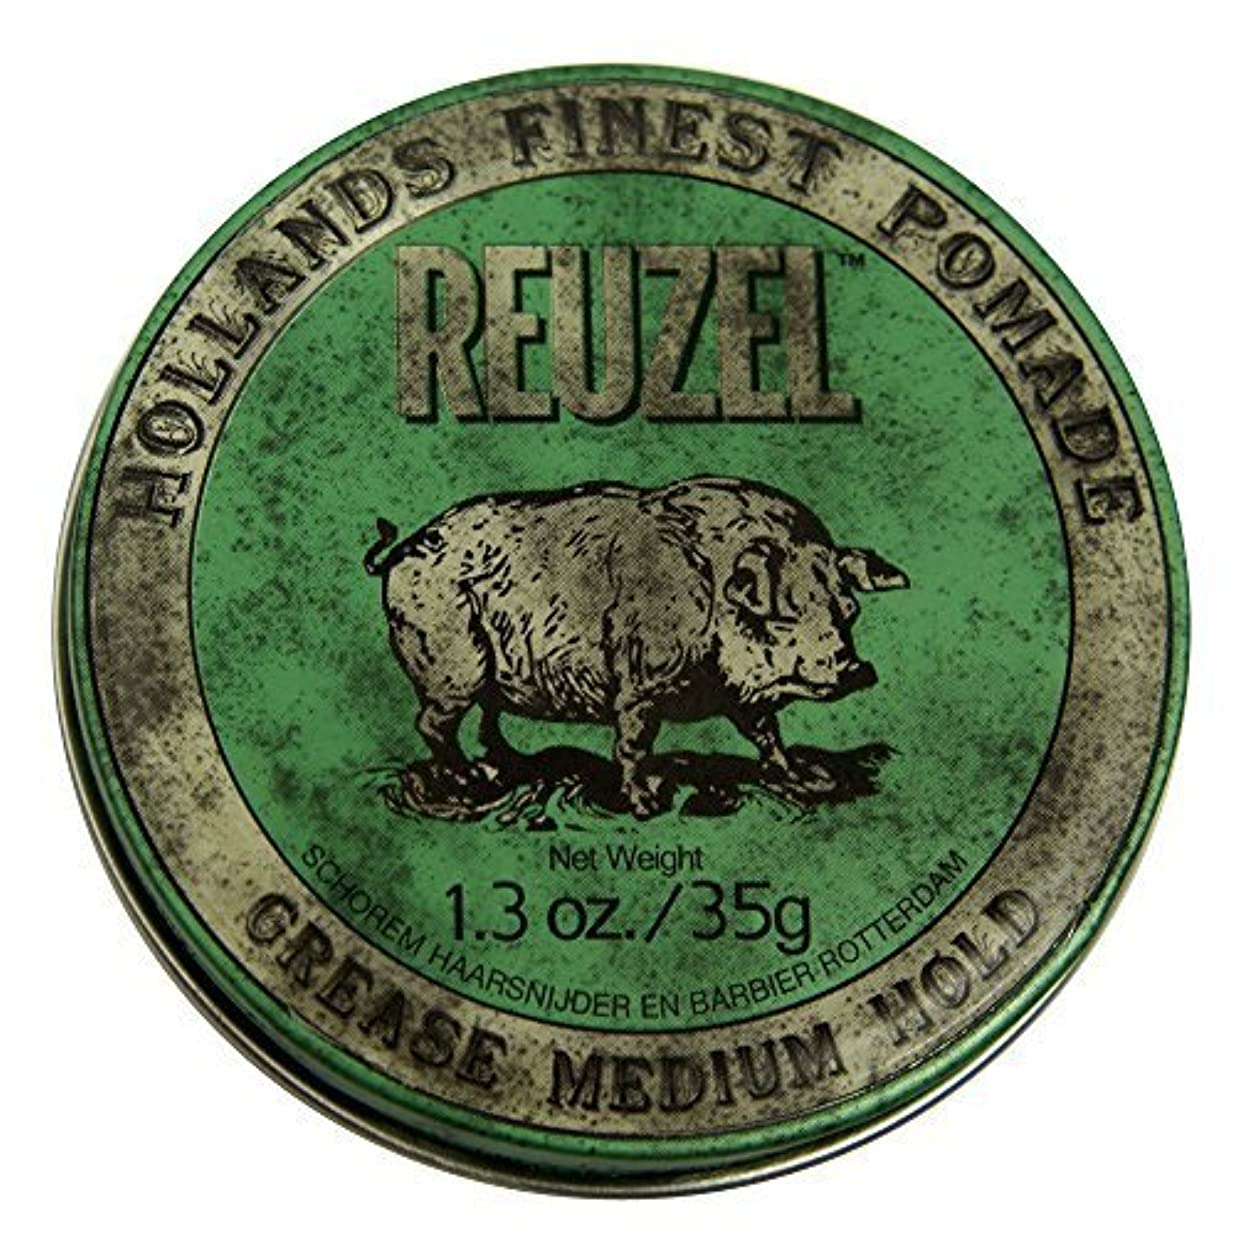 渇きの前で謙虚なby Reuzel Reuzel Green Grease Medium Hold Hair Styling Pomade Piglet 1.3oz (35g) Wax/Gel [並行輸入品]